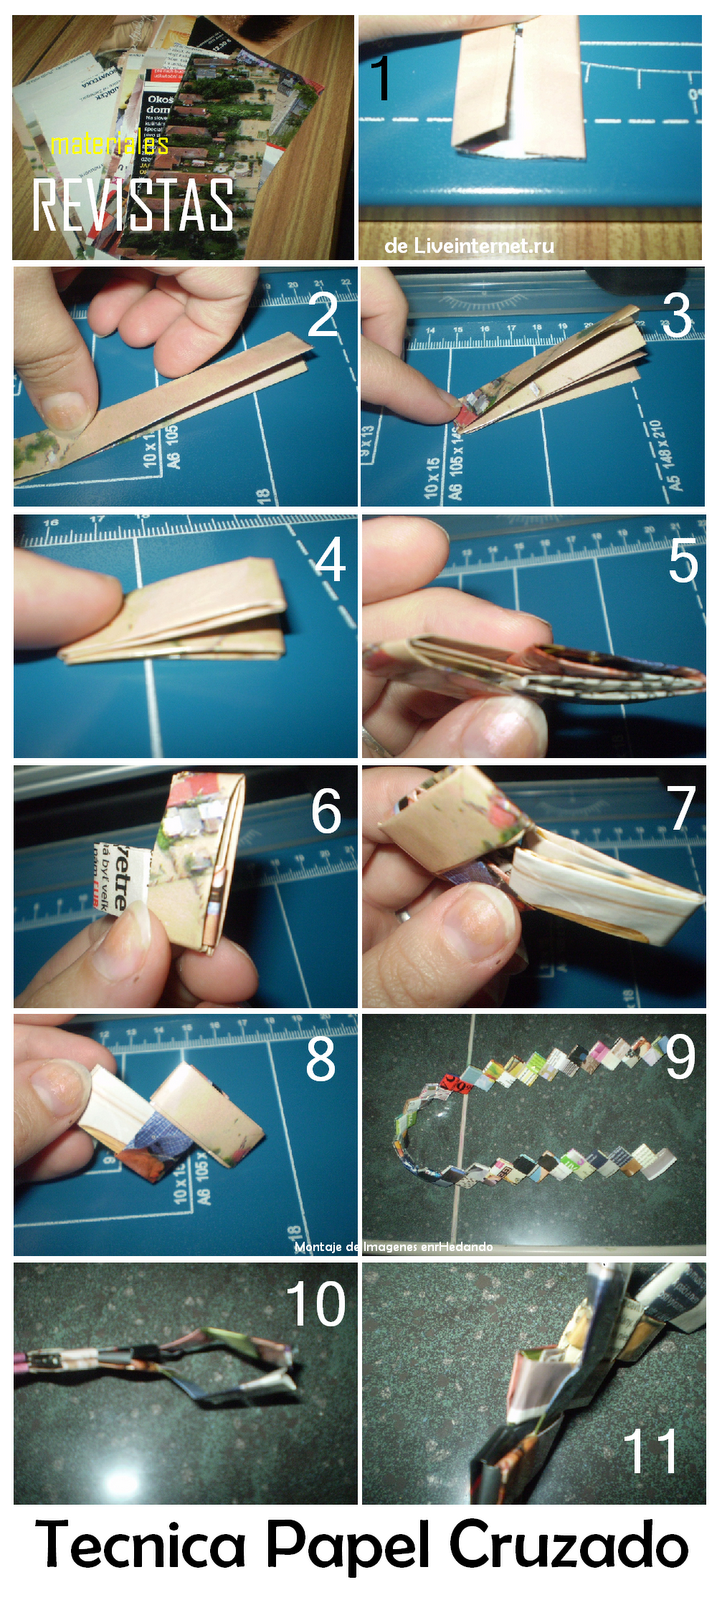 My sister taught me how to do this when I was a kid with gum wrappers....memories :)